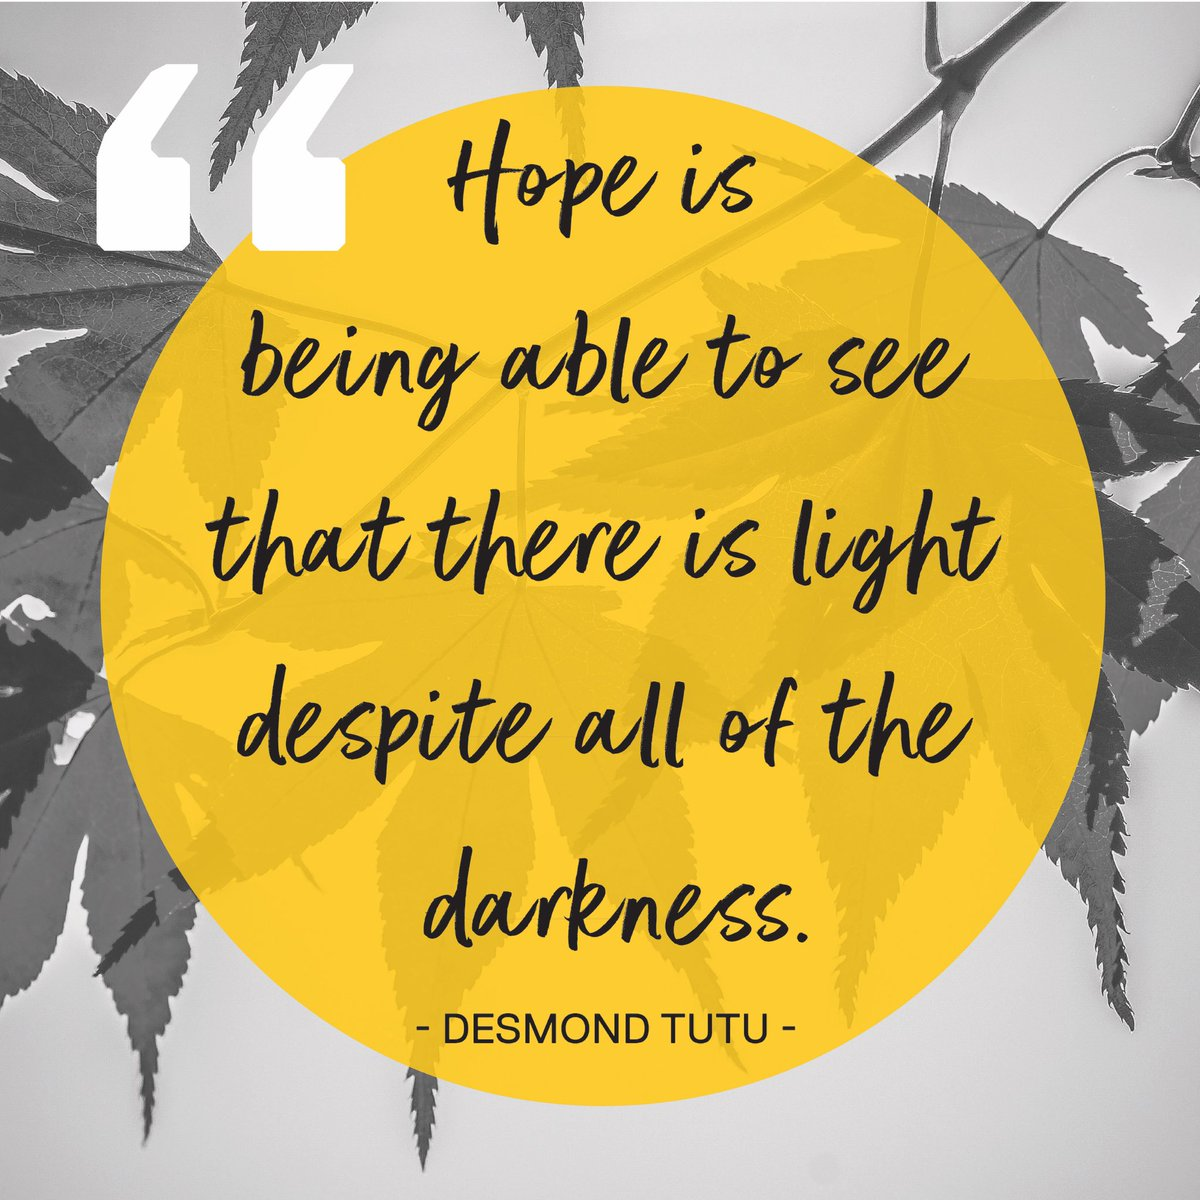 Wise words from Desmond Tutu about #hope. @GGSPosEd #PositiveEducation #PosEd #wellbeing